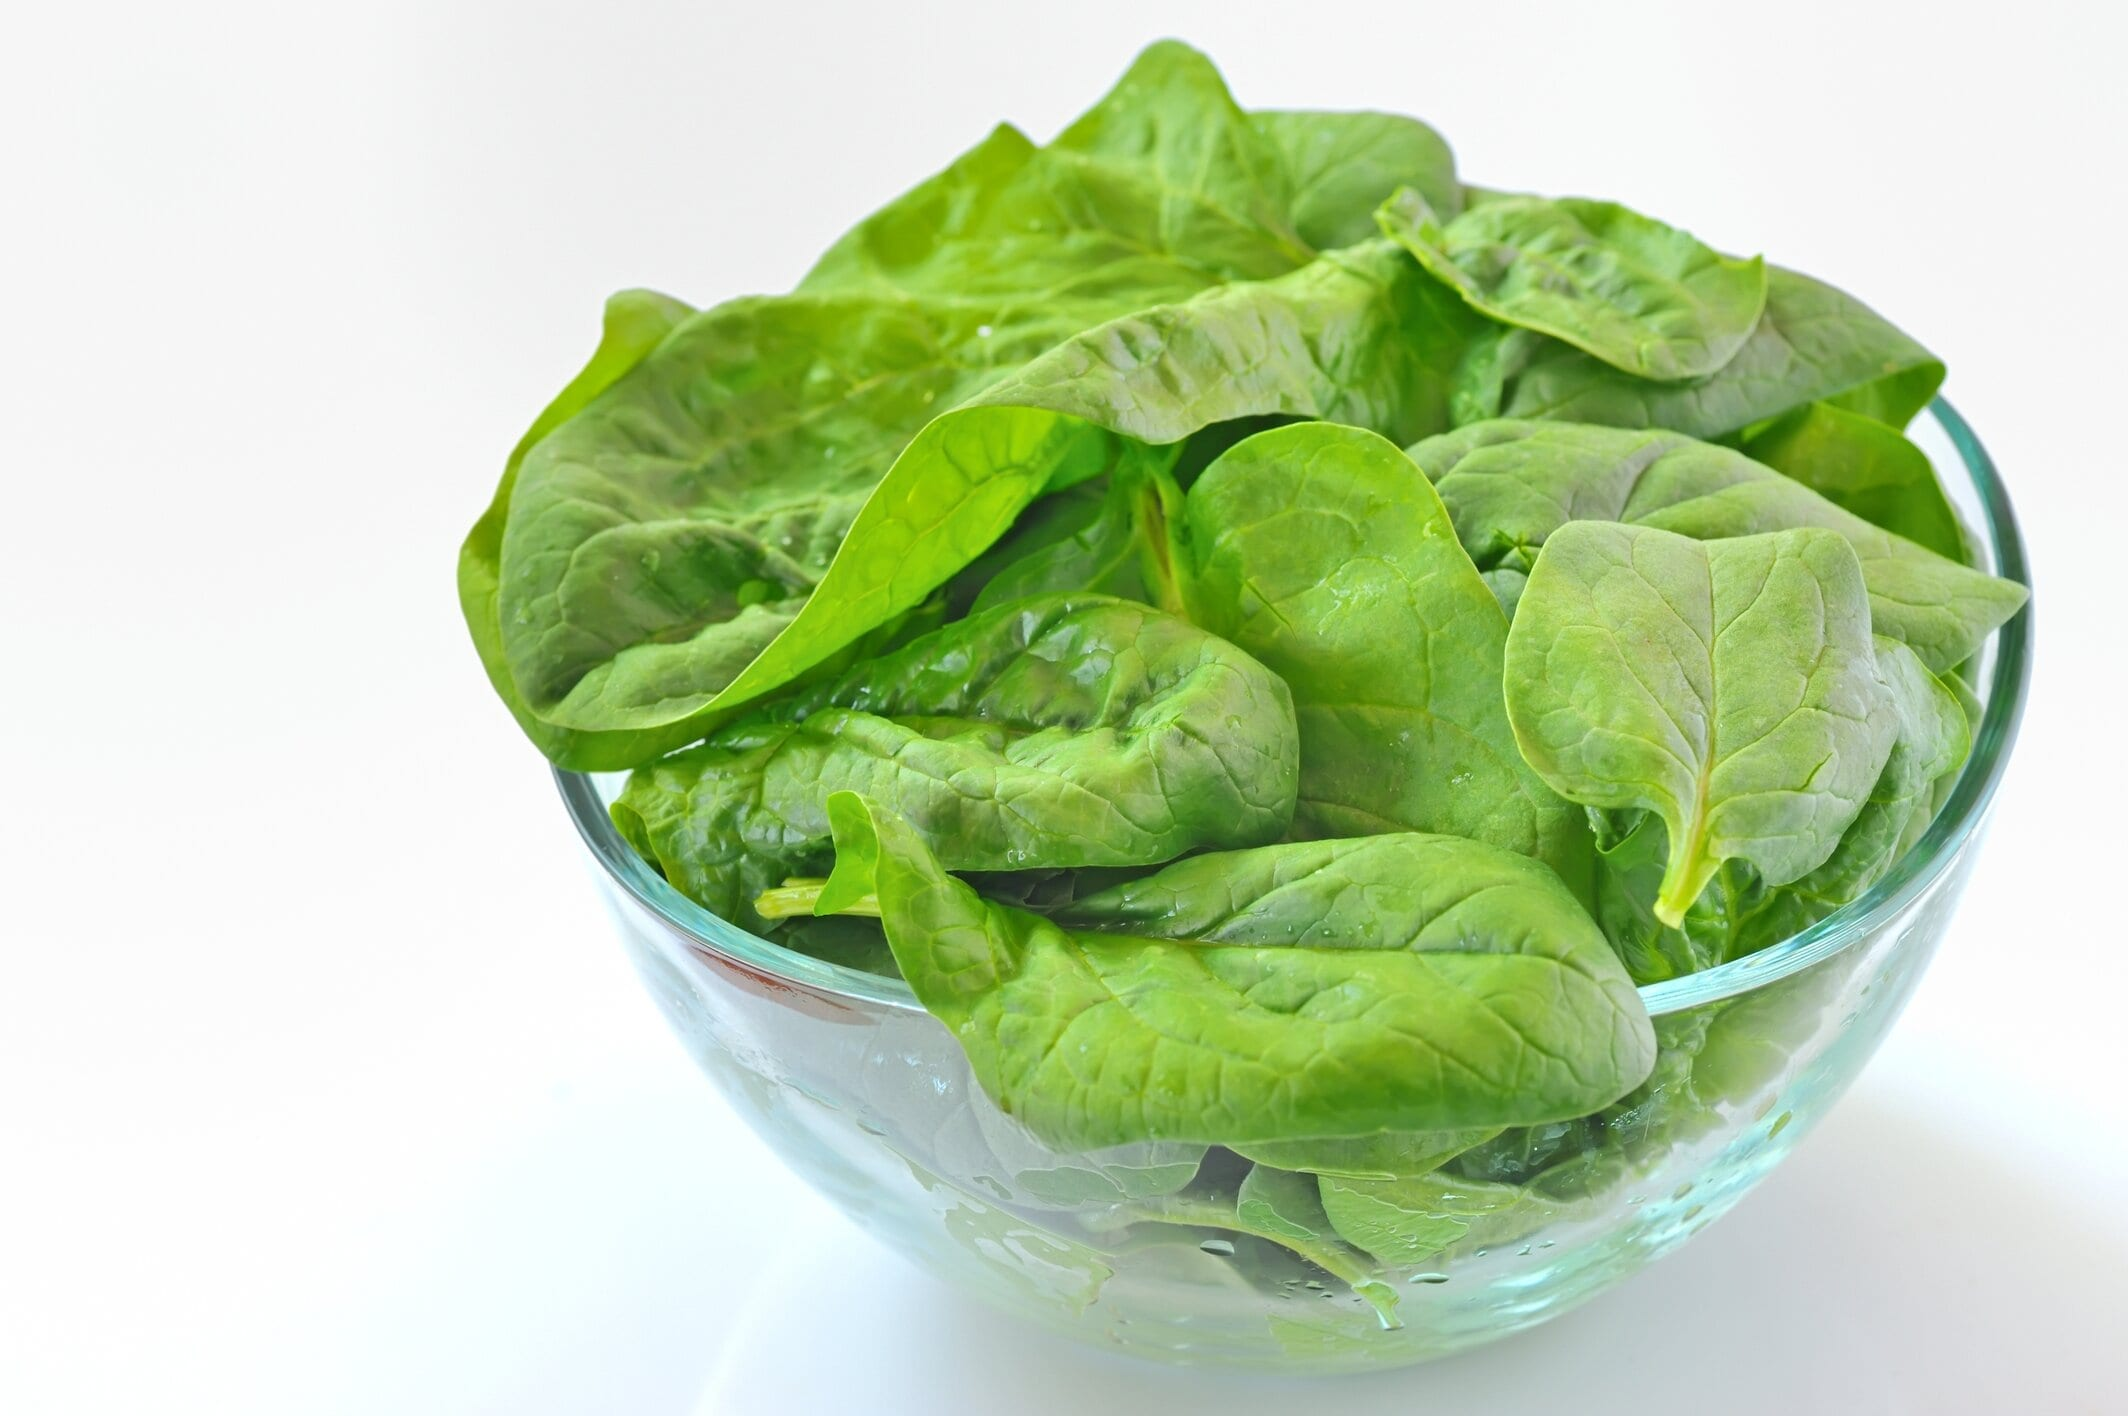 Case: Vegetable Processor Discovers Benefits of Chlorine Dioxide Disinfection